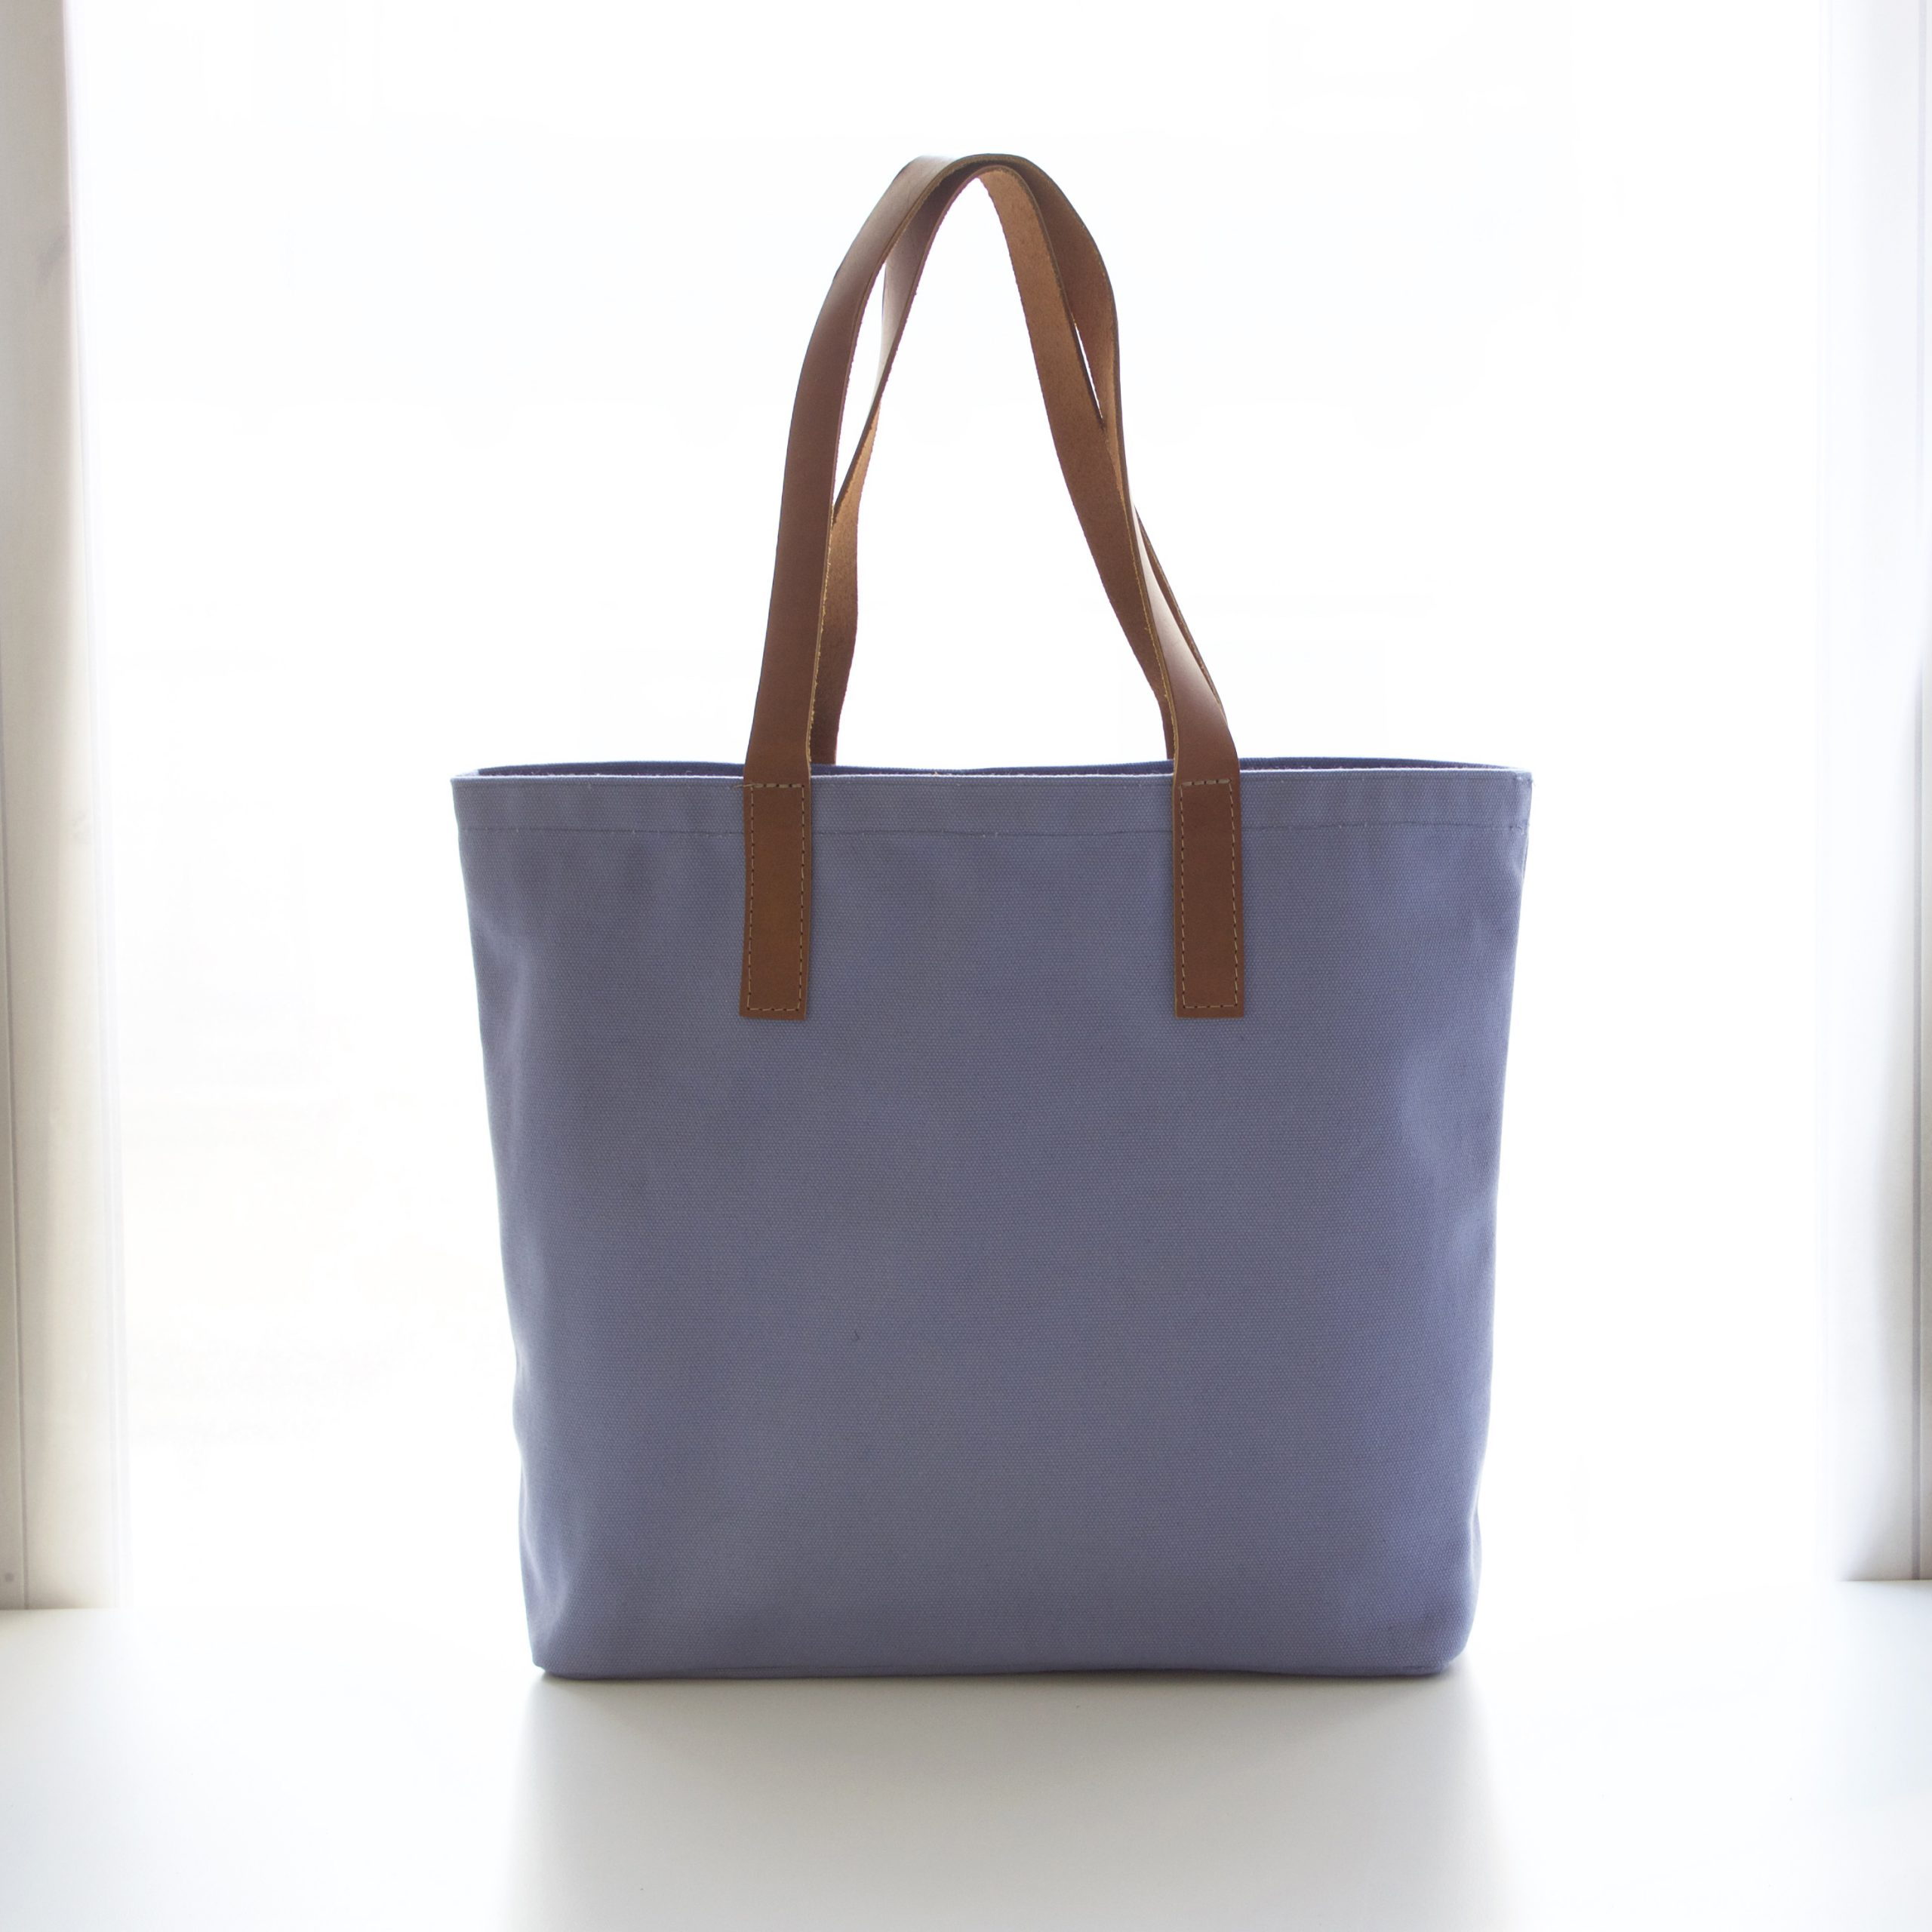 Color Canvas Tote with Leather Handles